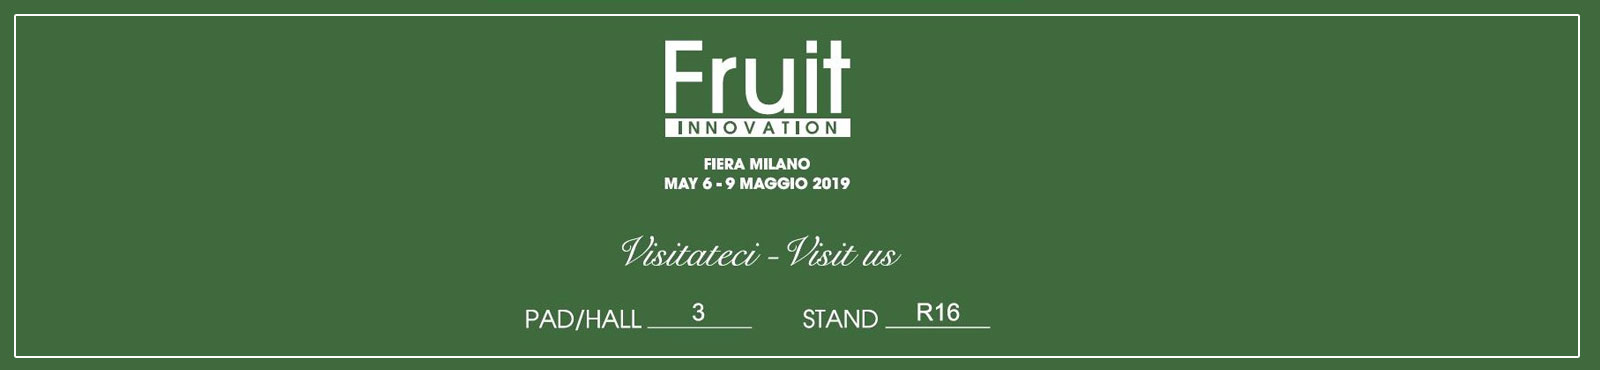 Evento Fruit Innovation dal 6 al 9 Maggio